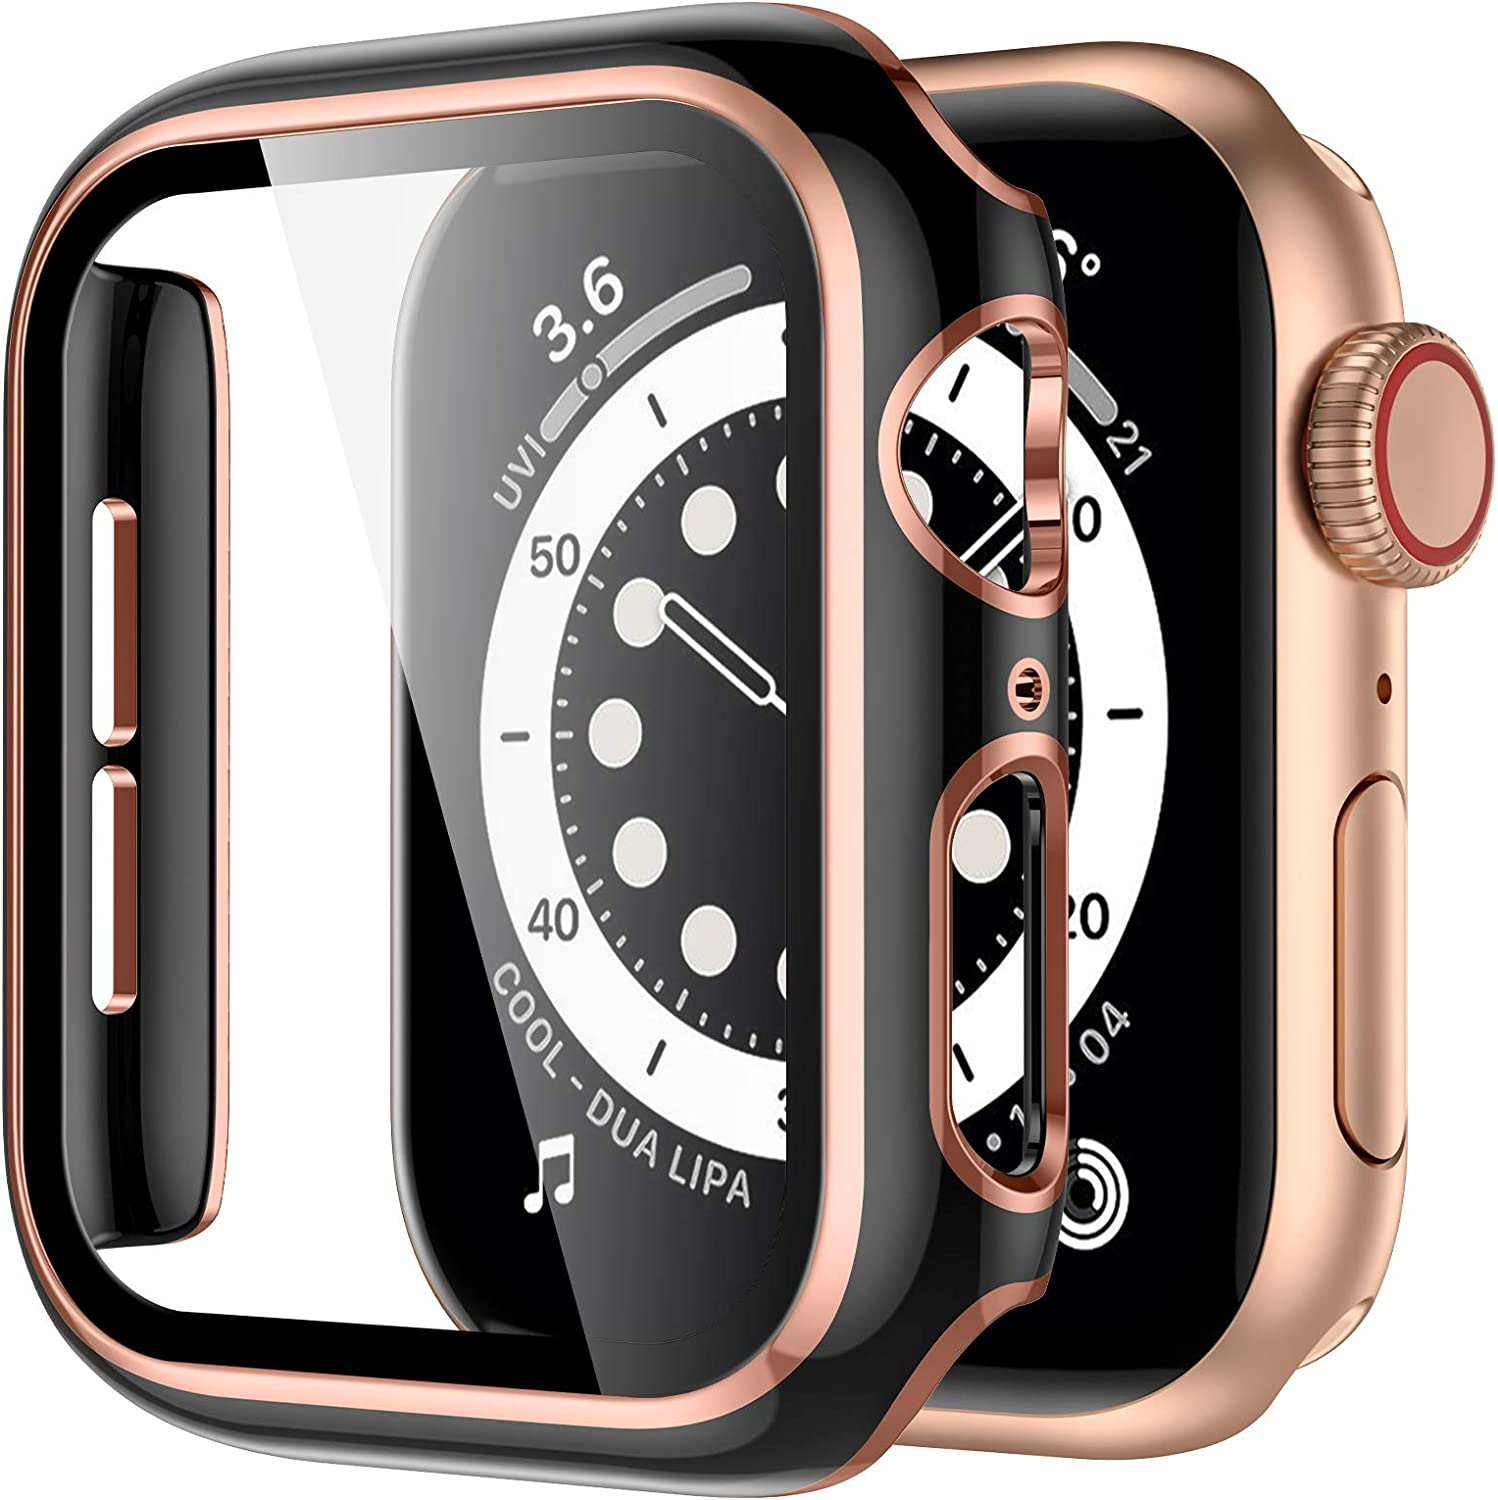 GEAK Hard Case Compatible for Apple Watch 40mm Built-in Screen Protector, Full Coverage Hard PC Cover with Rose Gold Edge Screen Protector for Women Men iWatch 40mm Series 6/5/4/se Black/Rose Gold